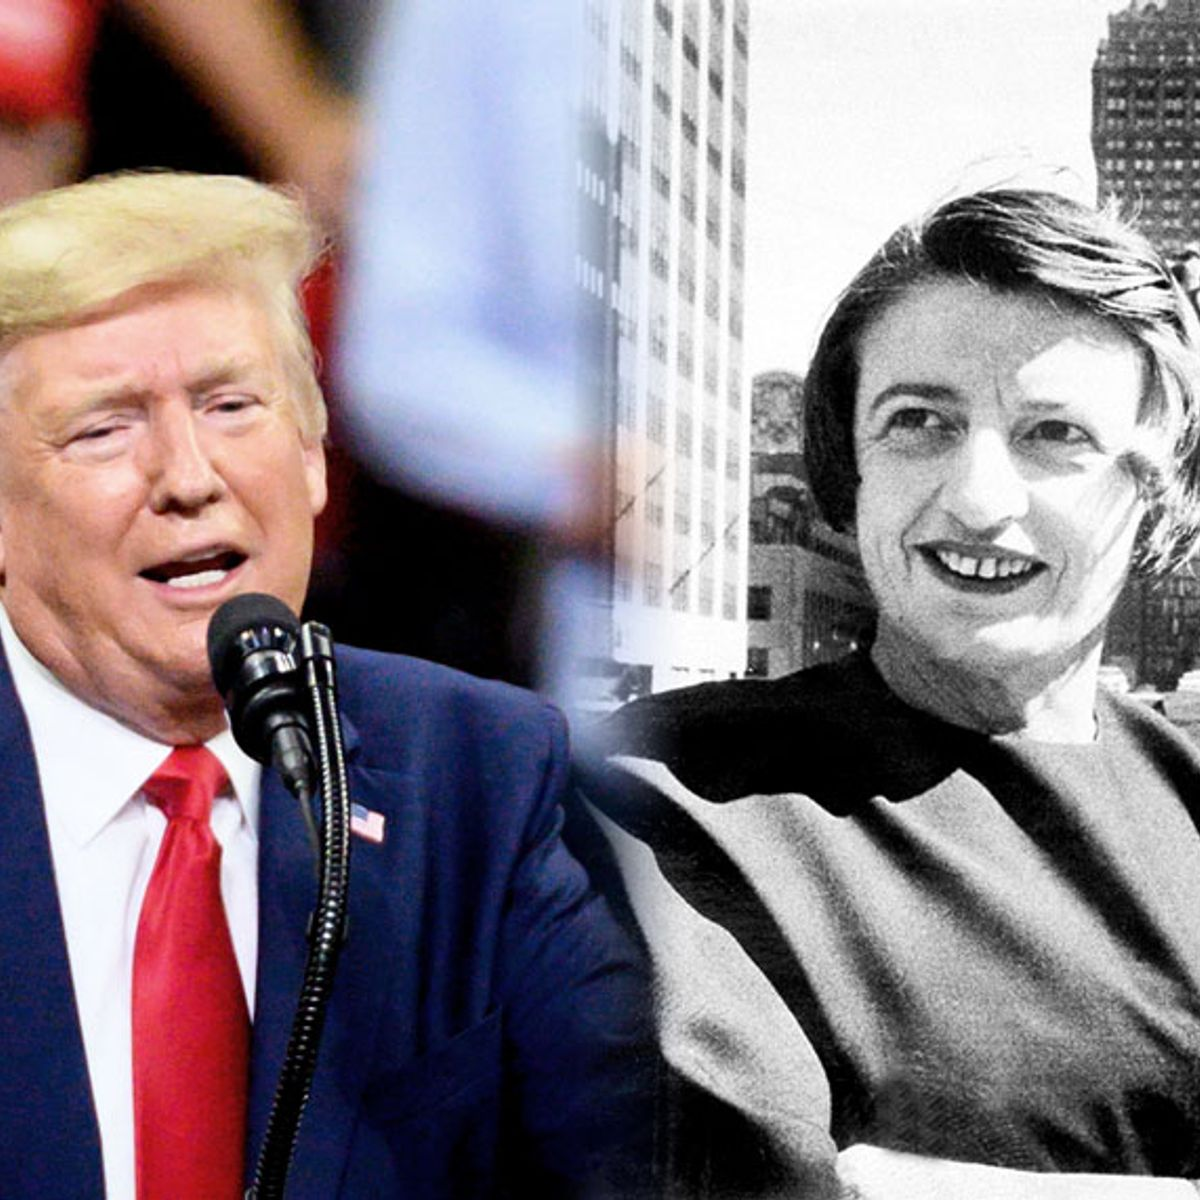 Right-wingers finally got their Ayn Rand hero as president — and it's this guy